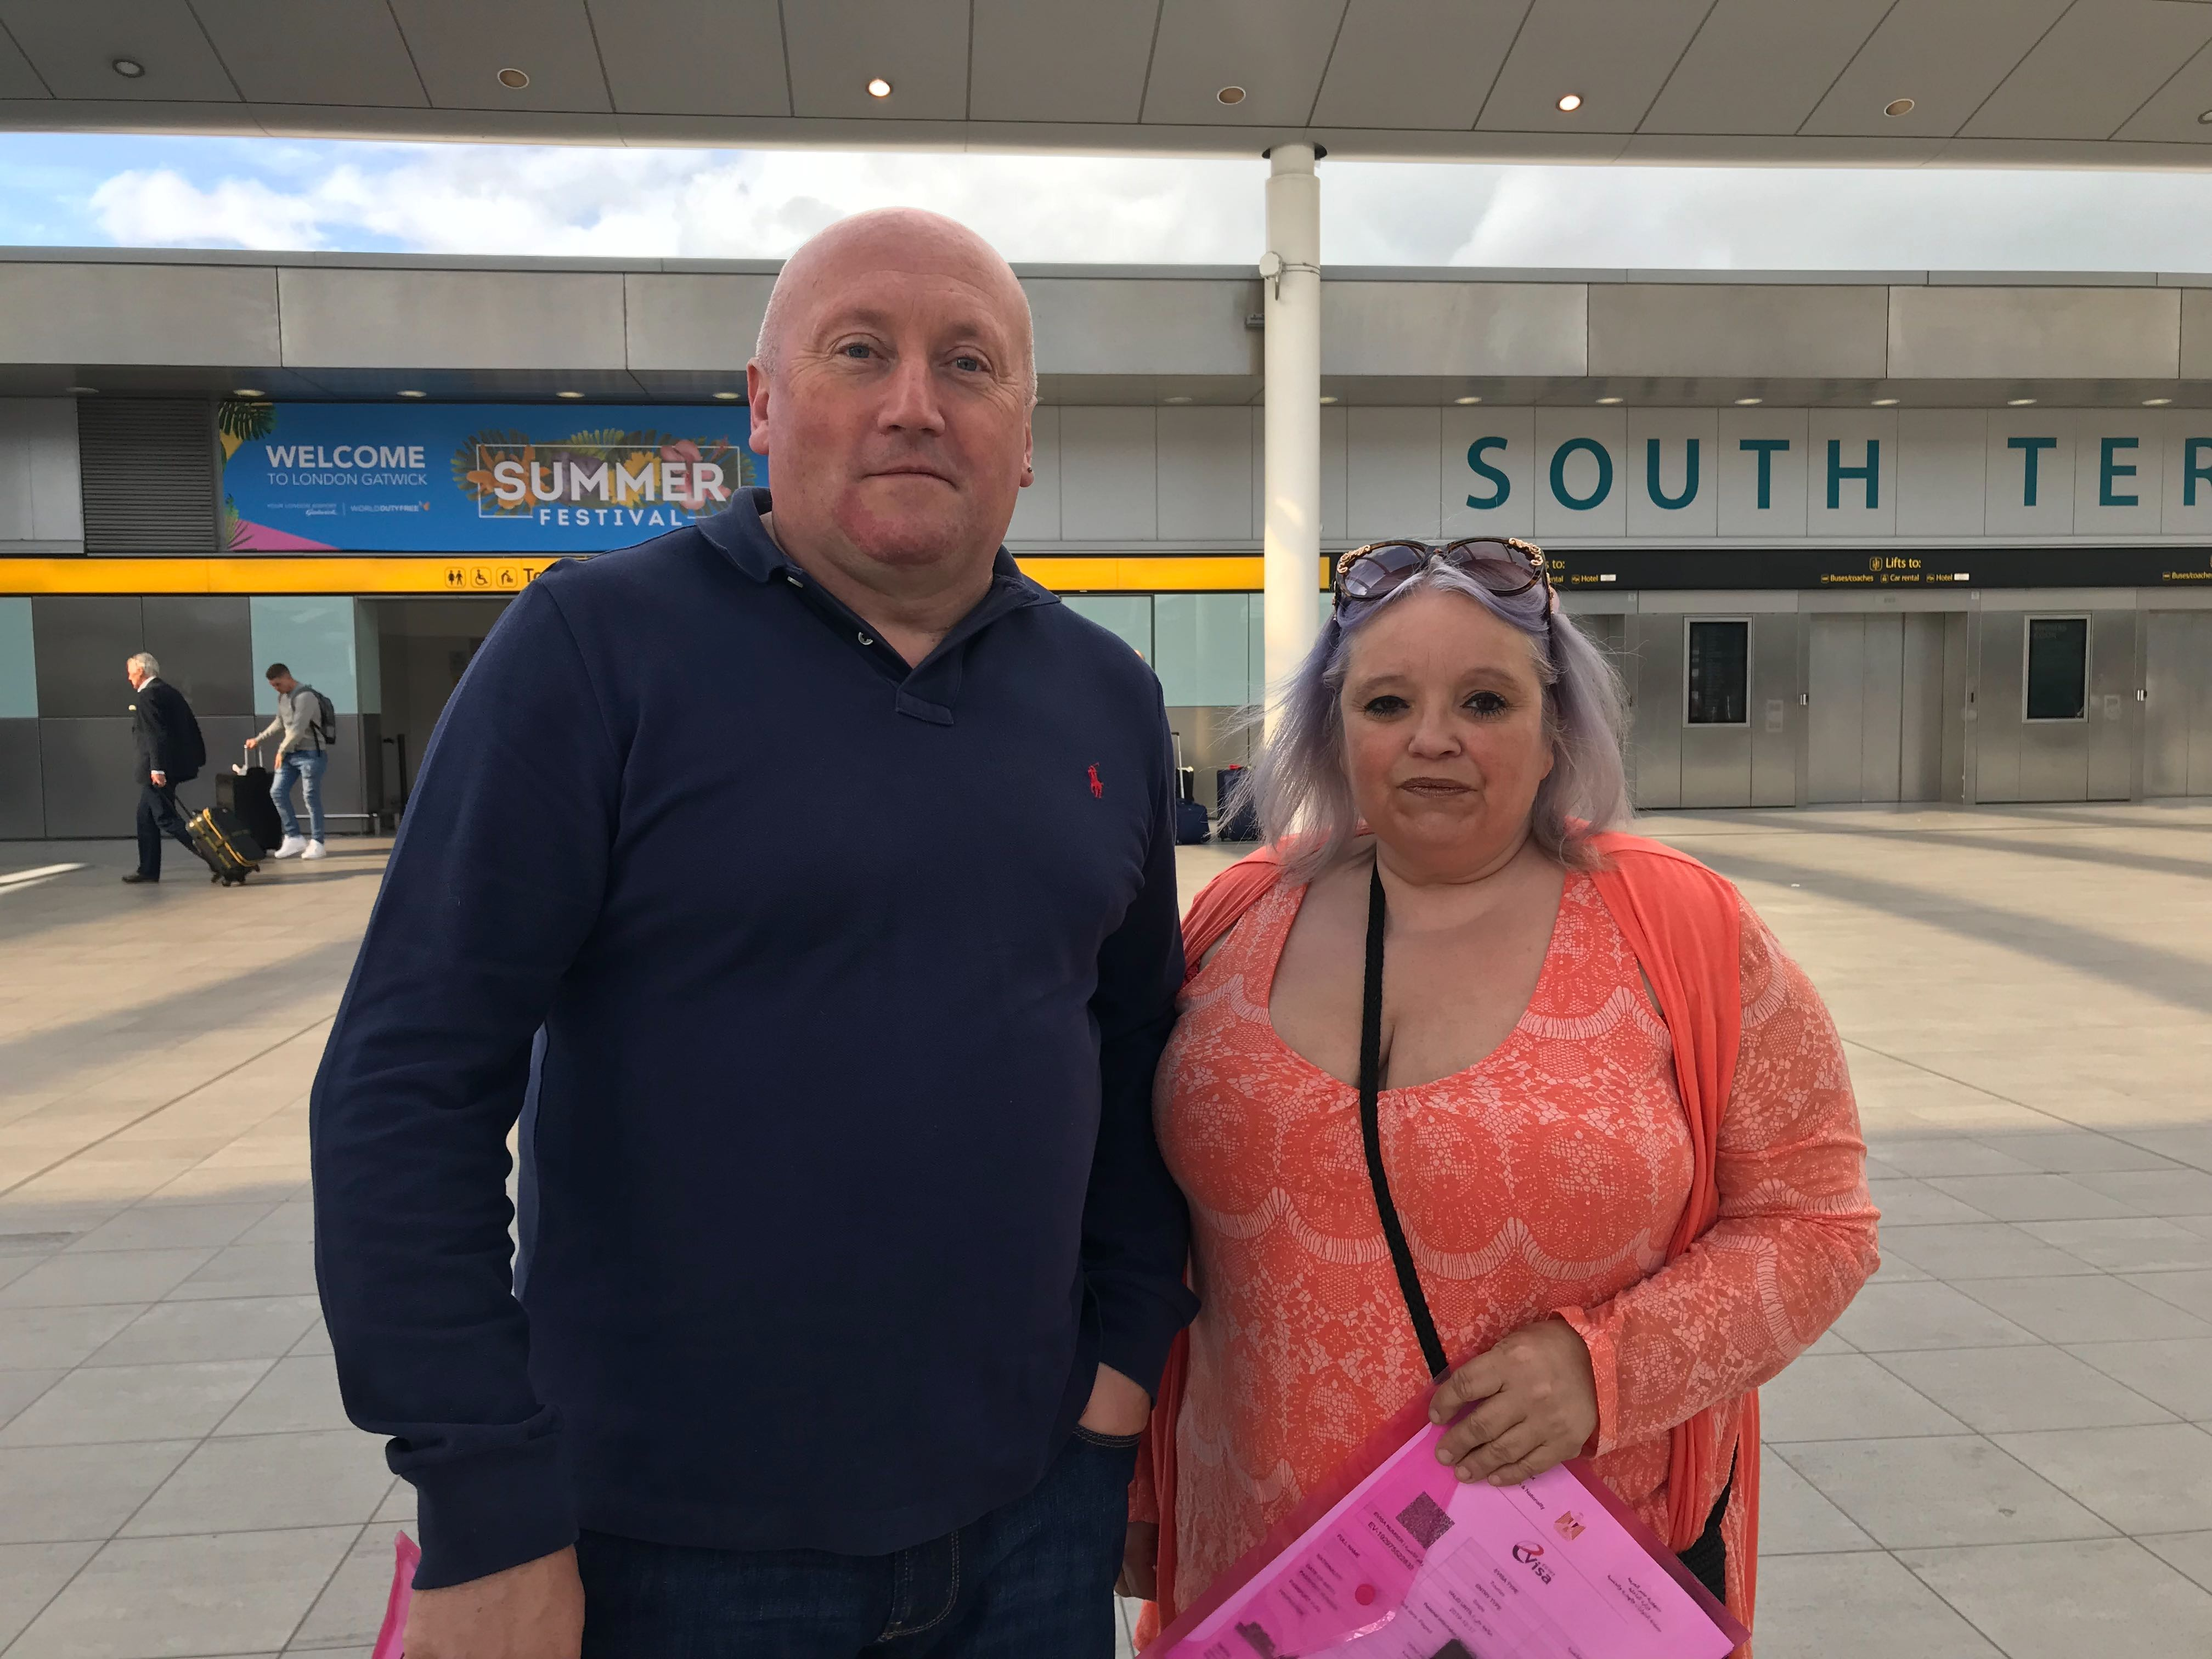 Martin Nowell and Pixie Flageul had booked flights with Thomas Cook to Hurghada, Egypt.